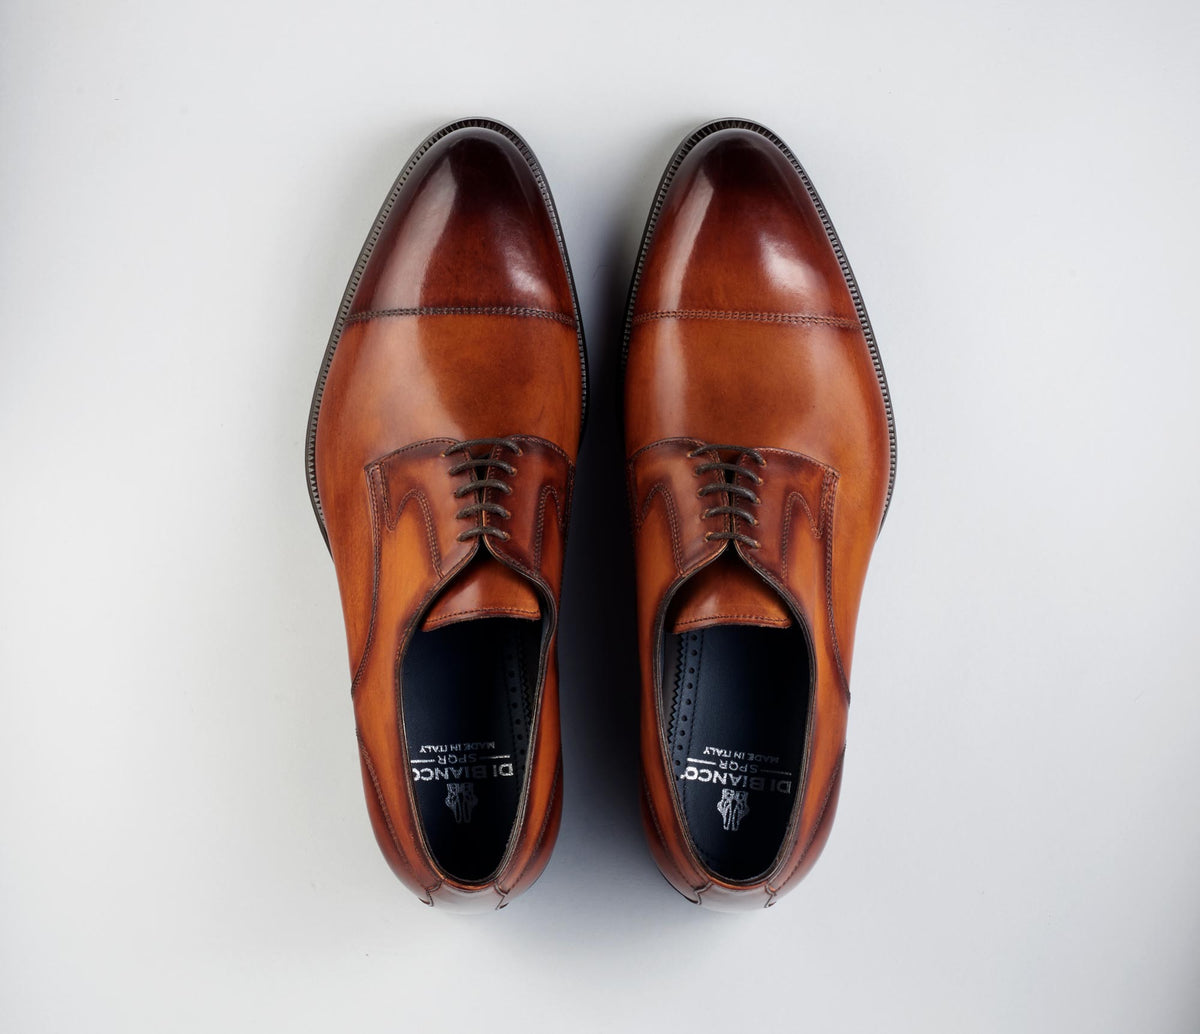 Bergamo Leather Deco Lace-up in Marmo